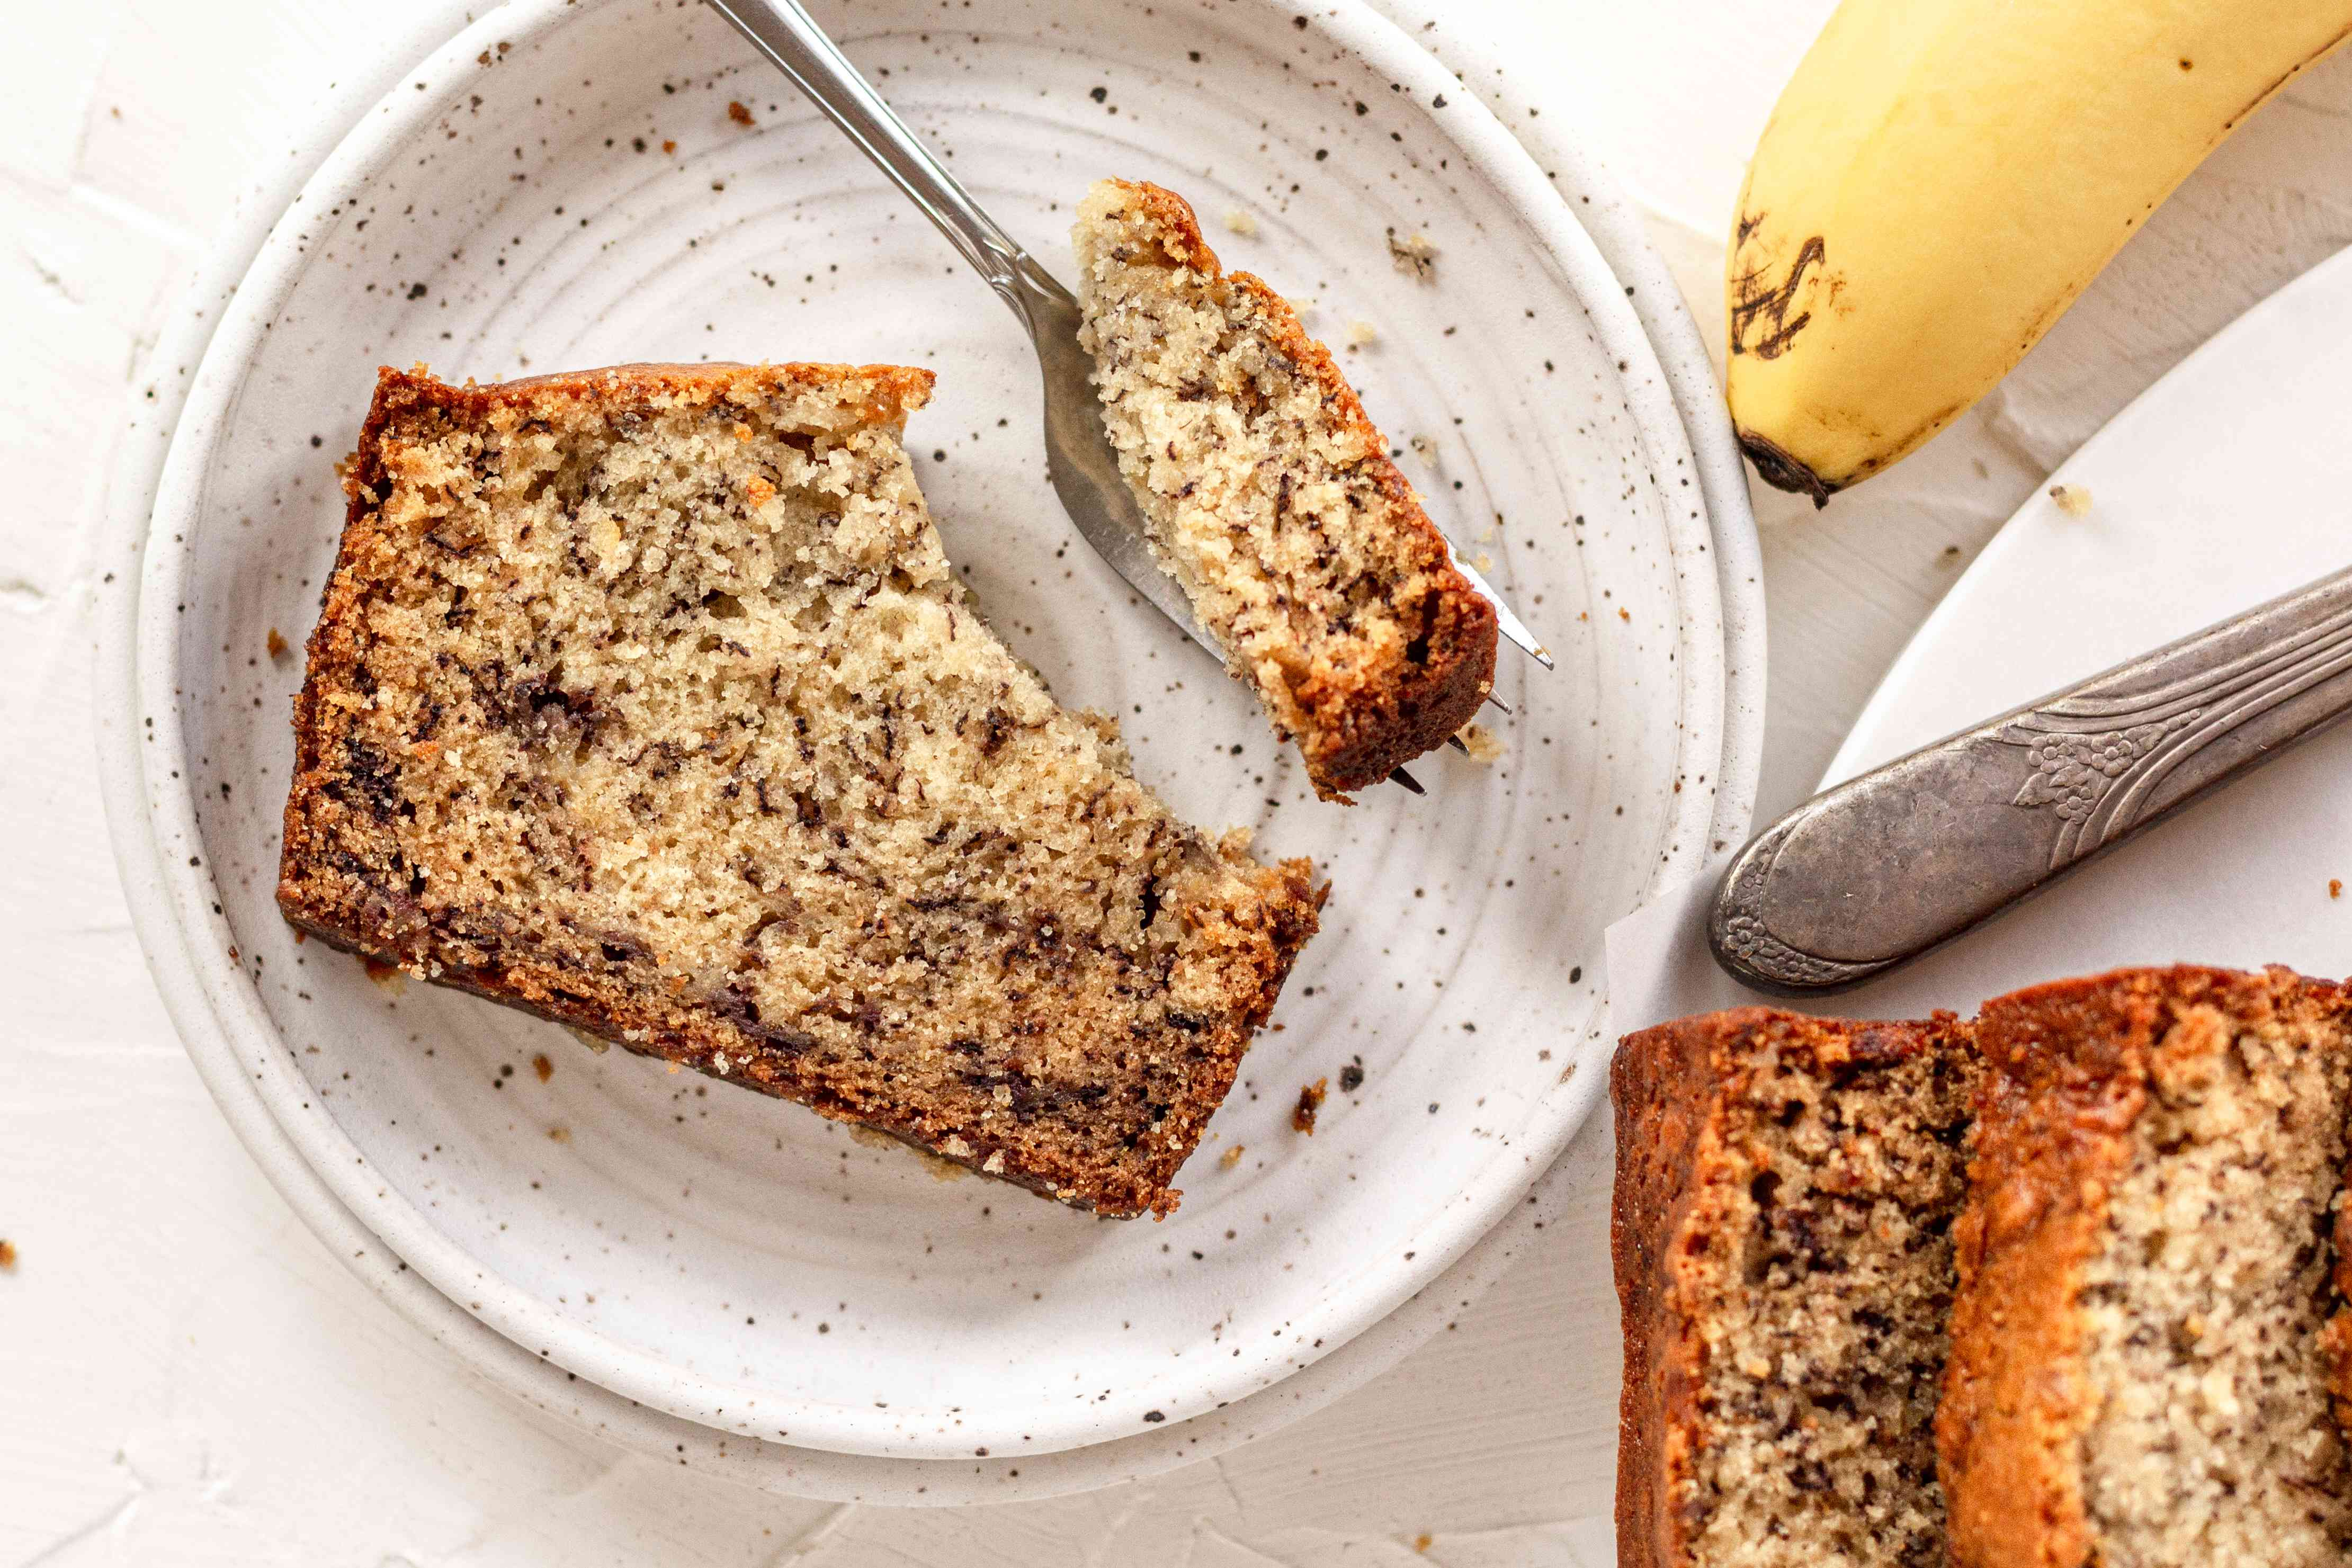 Overhead view of a slice of banana bread on a plate.